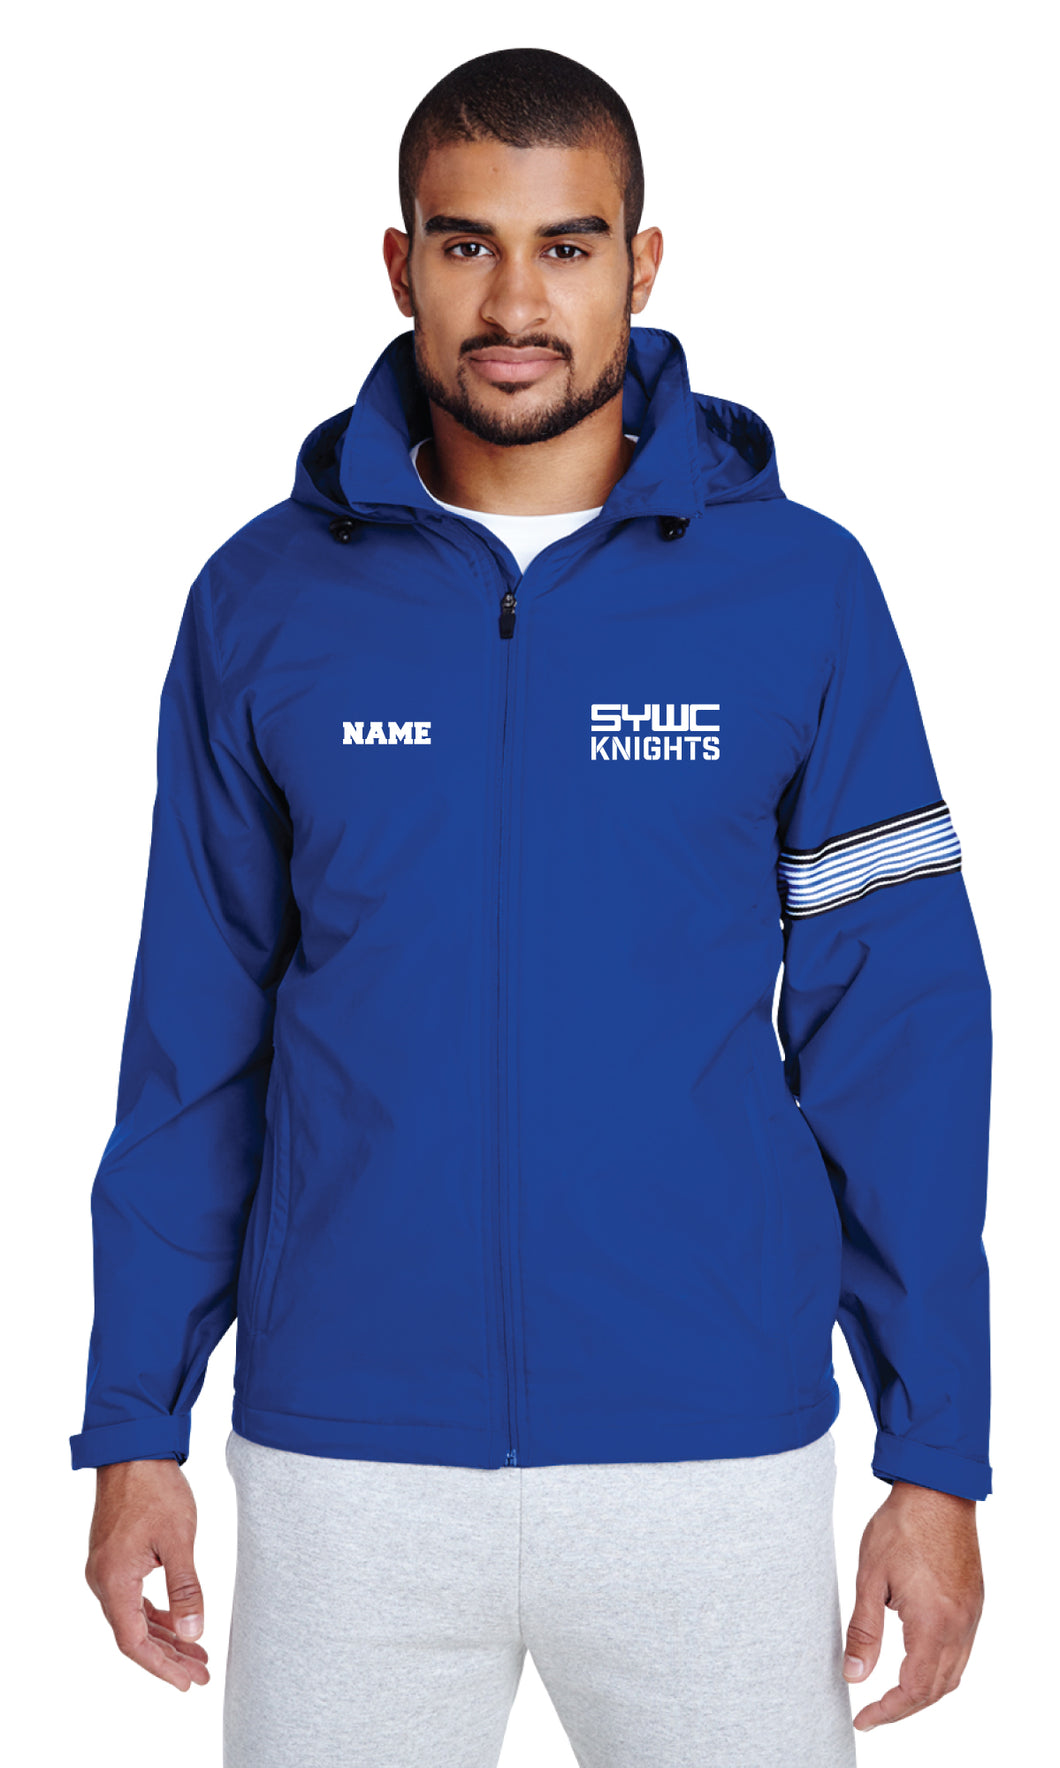 SYWC All Season Hooded Men's Jacket - Royal